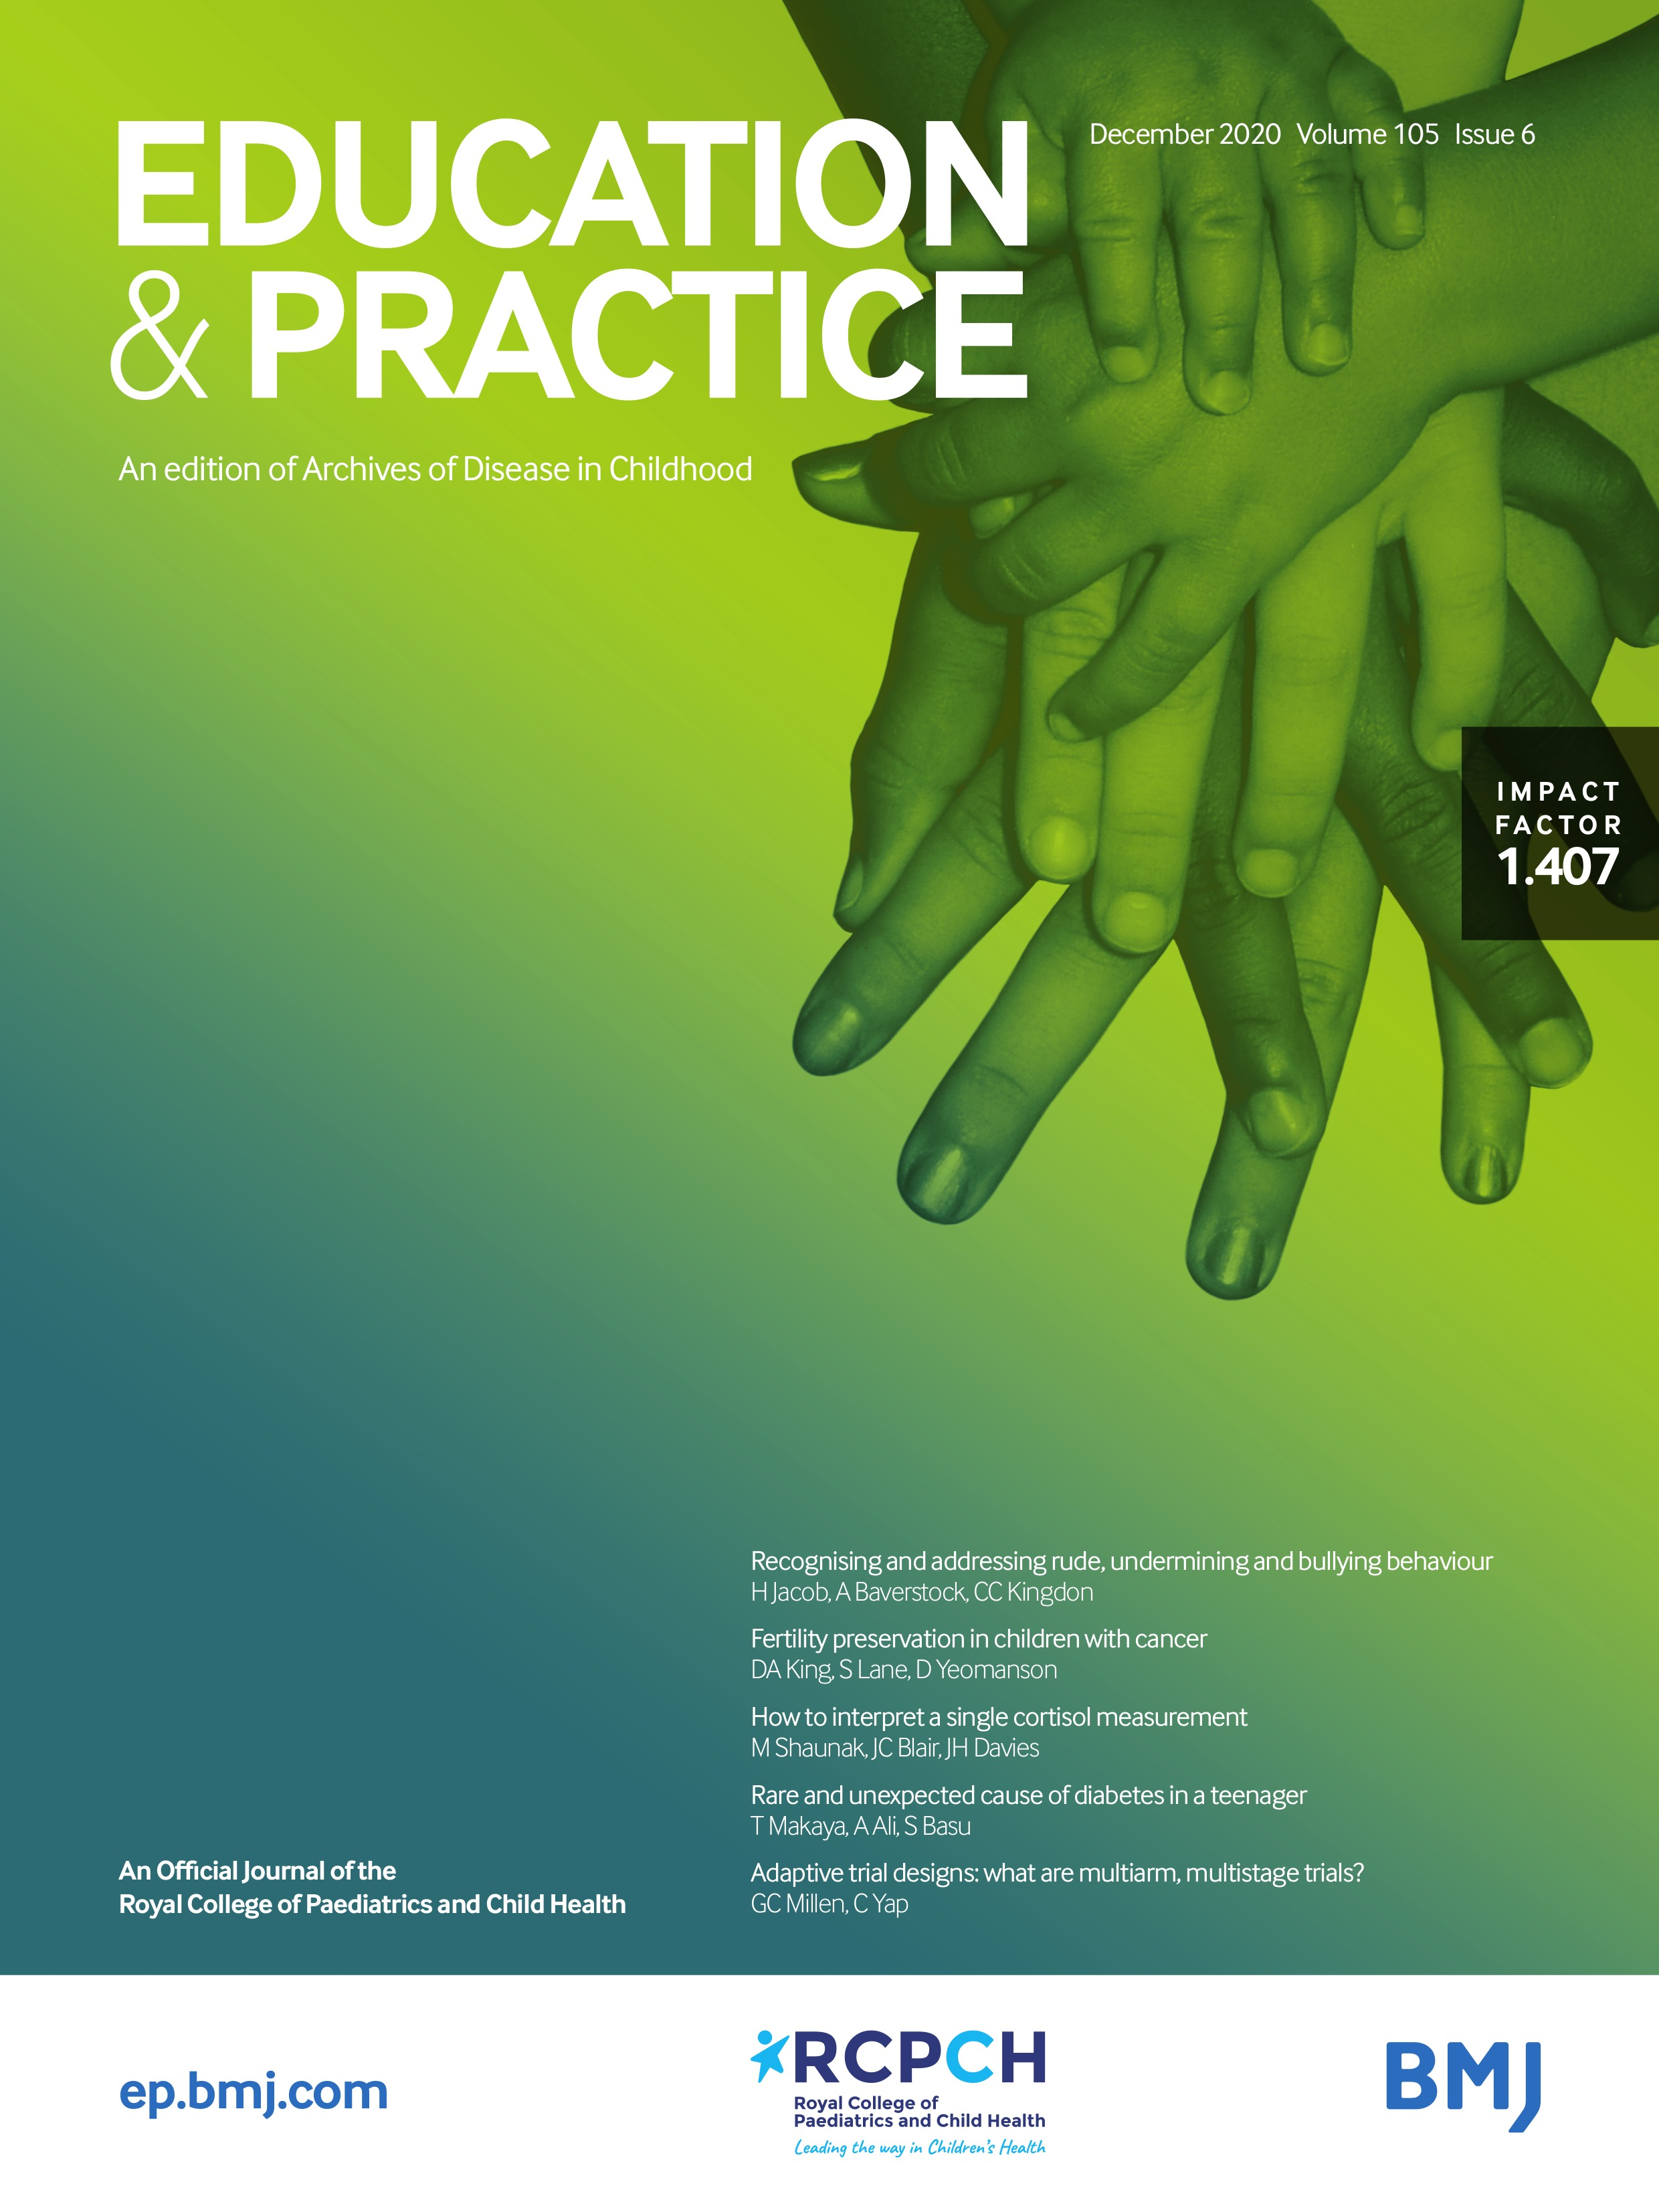 Acute treatment of migraine in children and adolescents: review of the American Academy of Neurology Practice guideline update